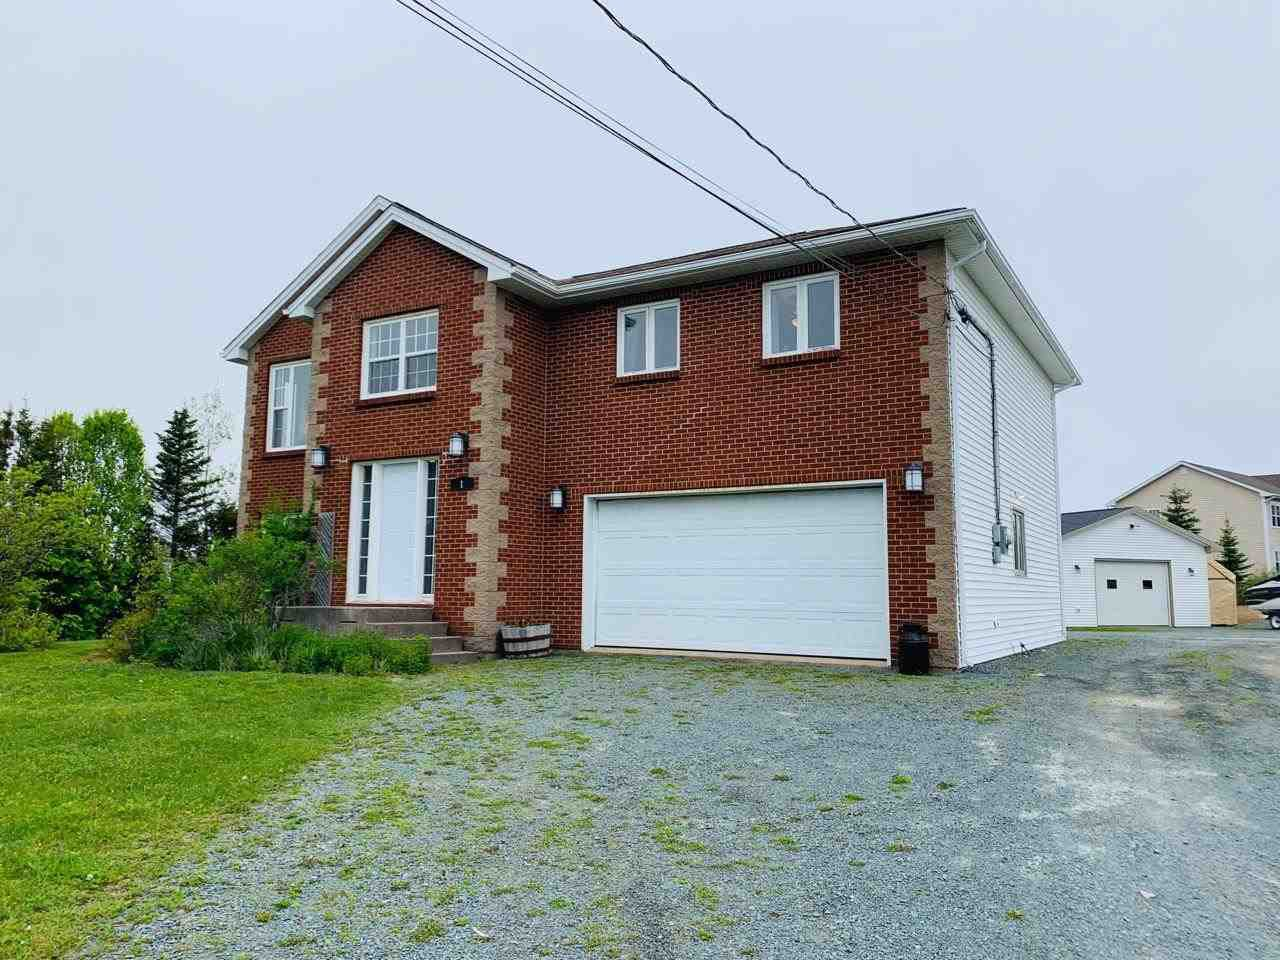 Main Photo: 1 Porterfield Drive in Porters Lake: 31-Lawrencetown, Lake Echo, Porters Lake Residential for sale (Halifax-Dartmouth)  : MLS®# 202010544